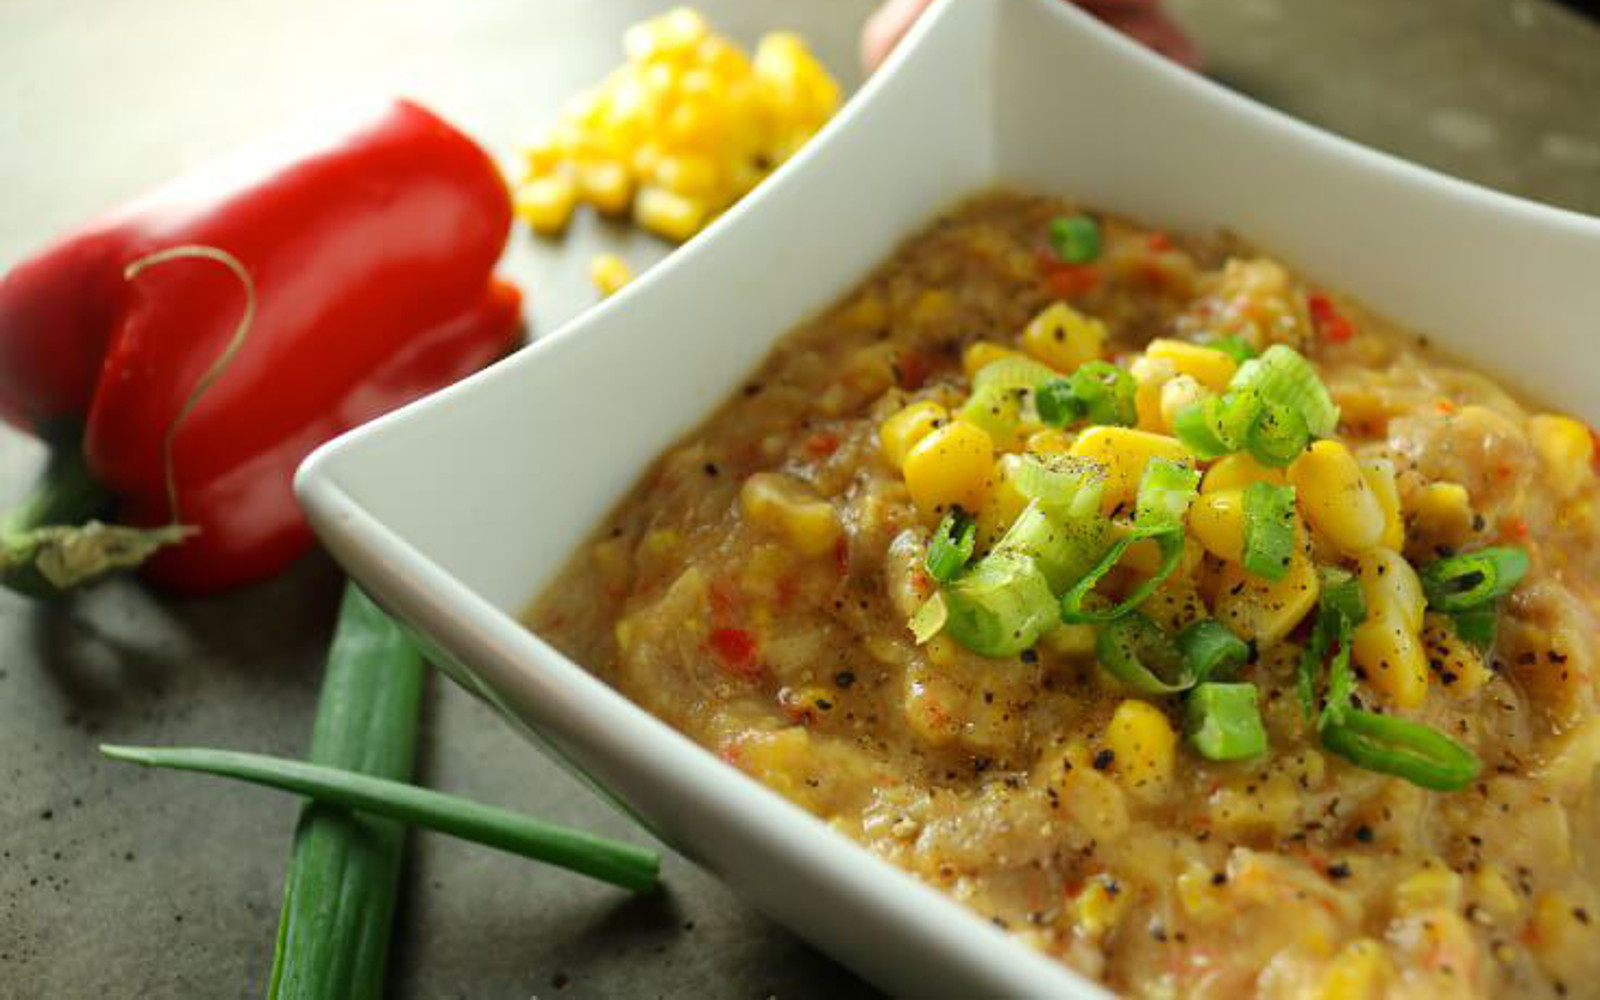 Whole-Food Plant-Based Vegan High-Carb Creamy Corn SoupHigh-Carb Creamy Corn SoupHigh-Carb Creamy Corn Soup with peppers and topping